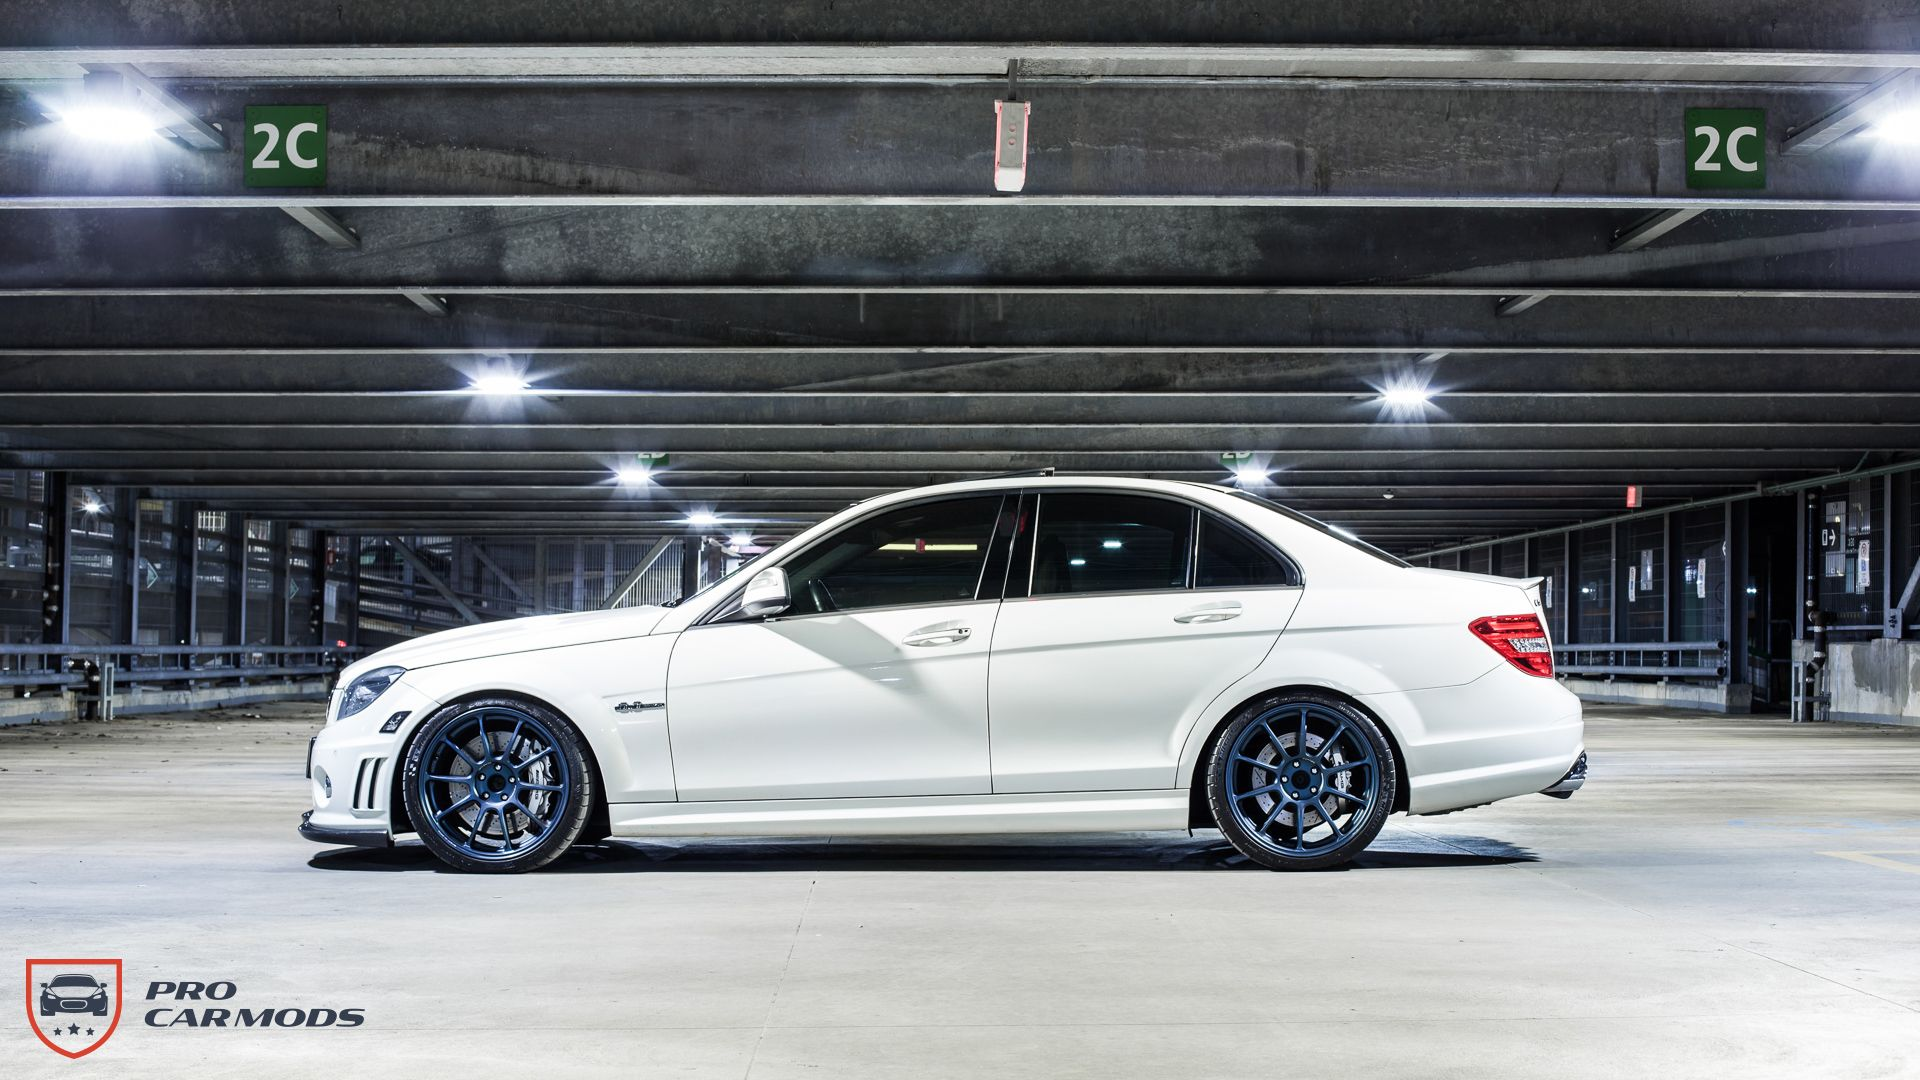 Modified mercedes c63 amg slicker than your average 2009 for Mercedes benz c63 amg 2009